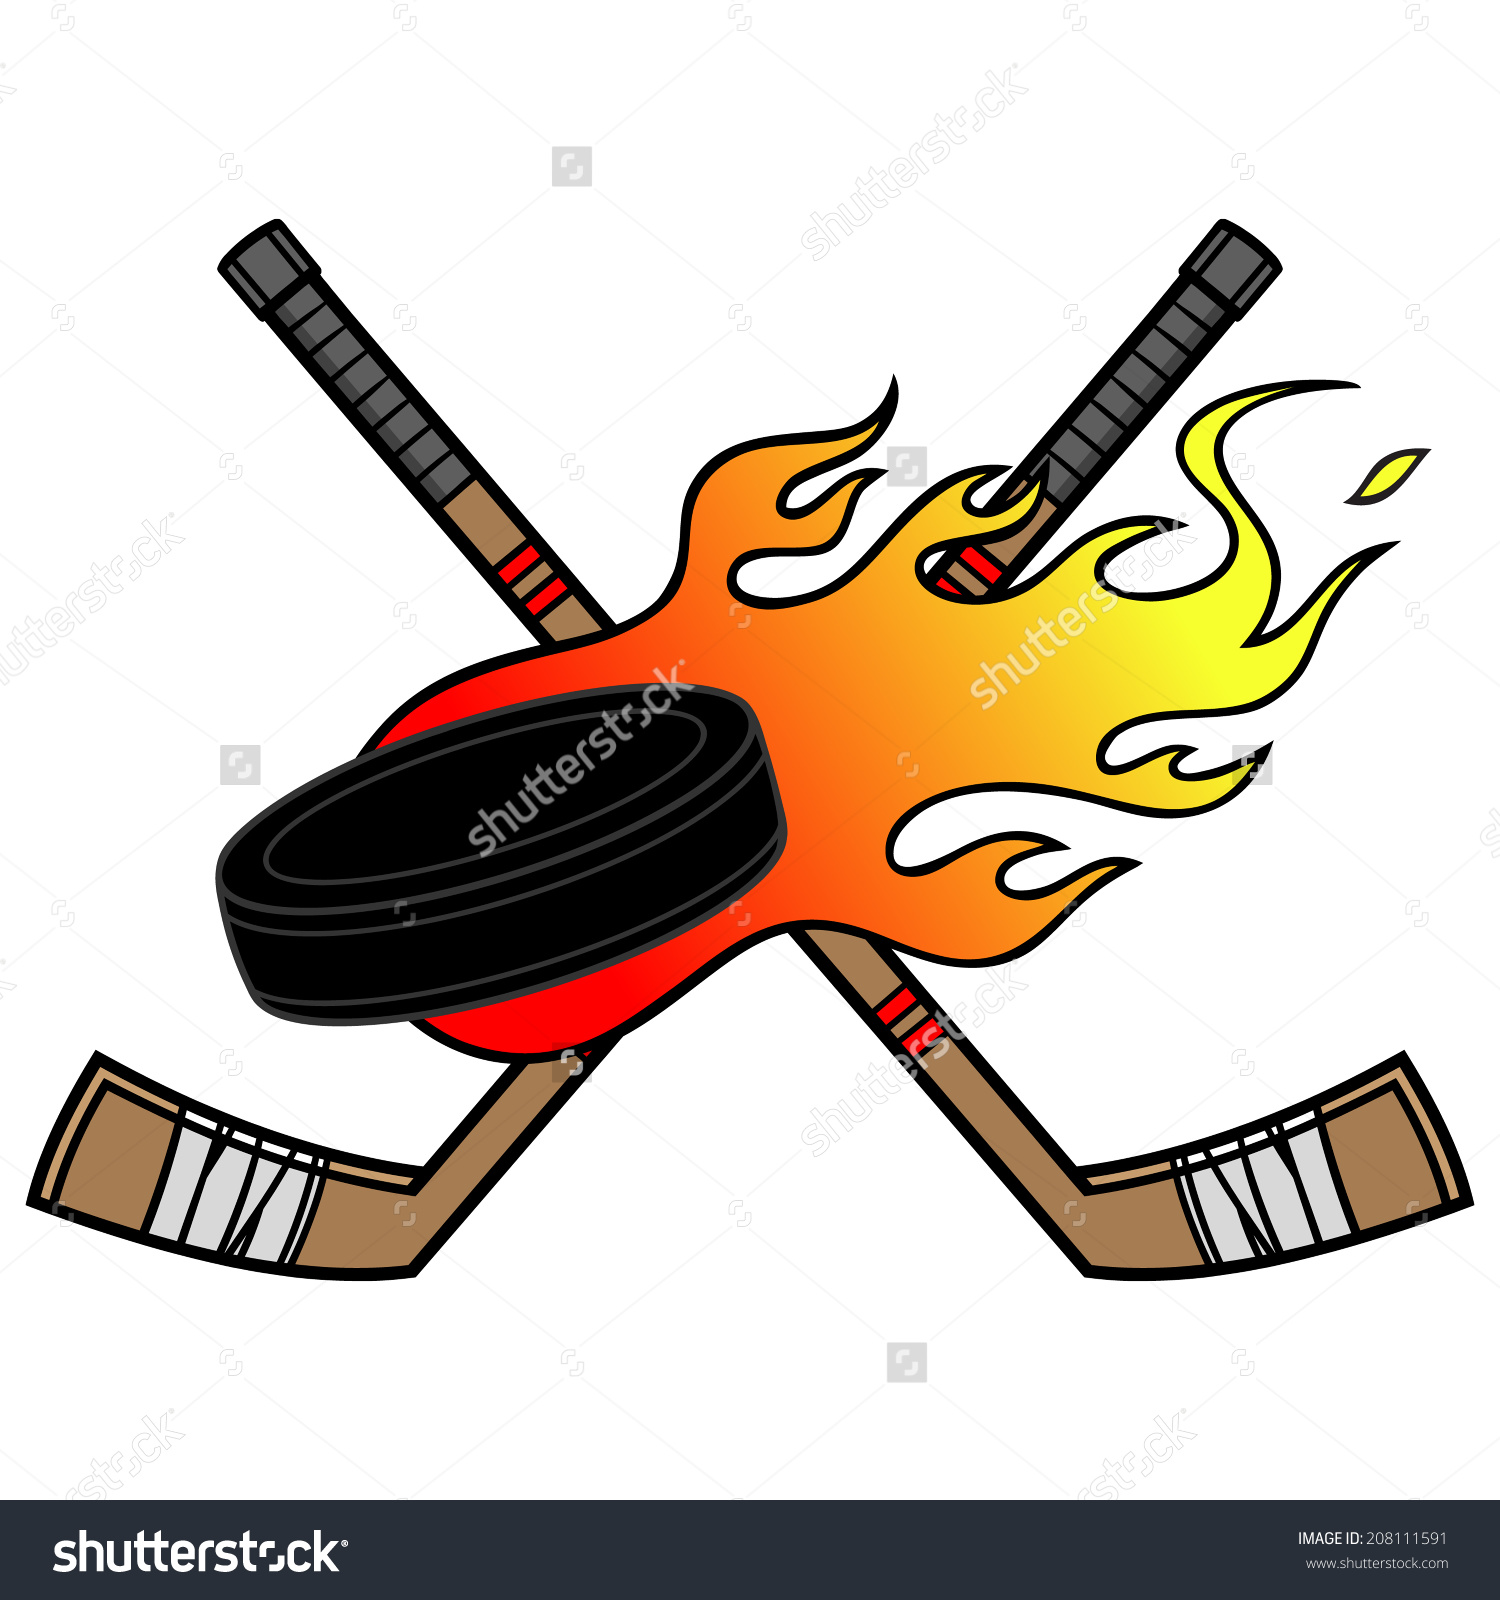 Flaming hockey puck clipart graphic transparent download Flaming hockey puck clipart - ClipartFest graphic transparent download